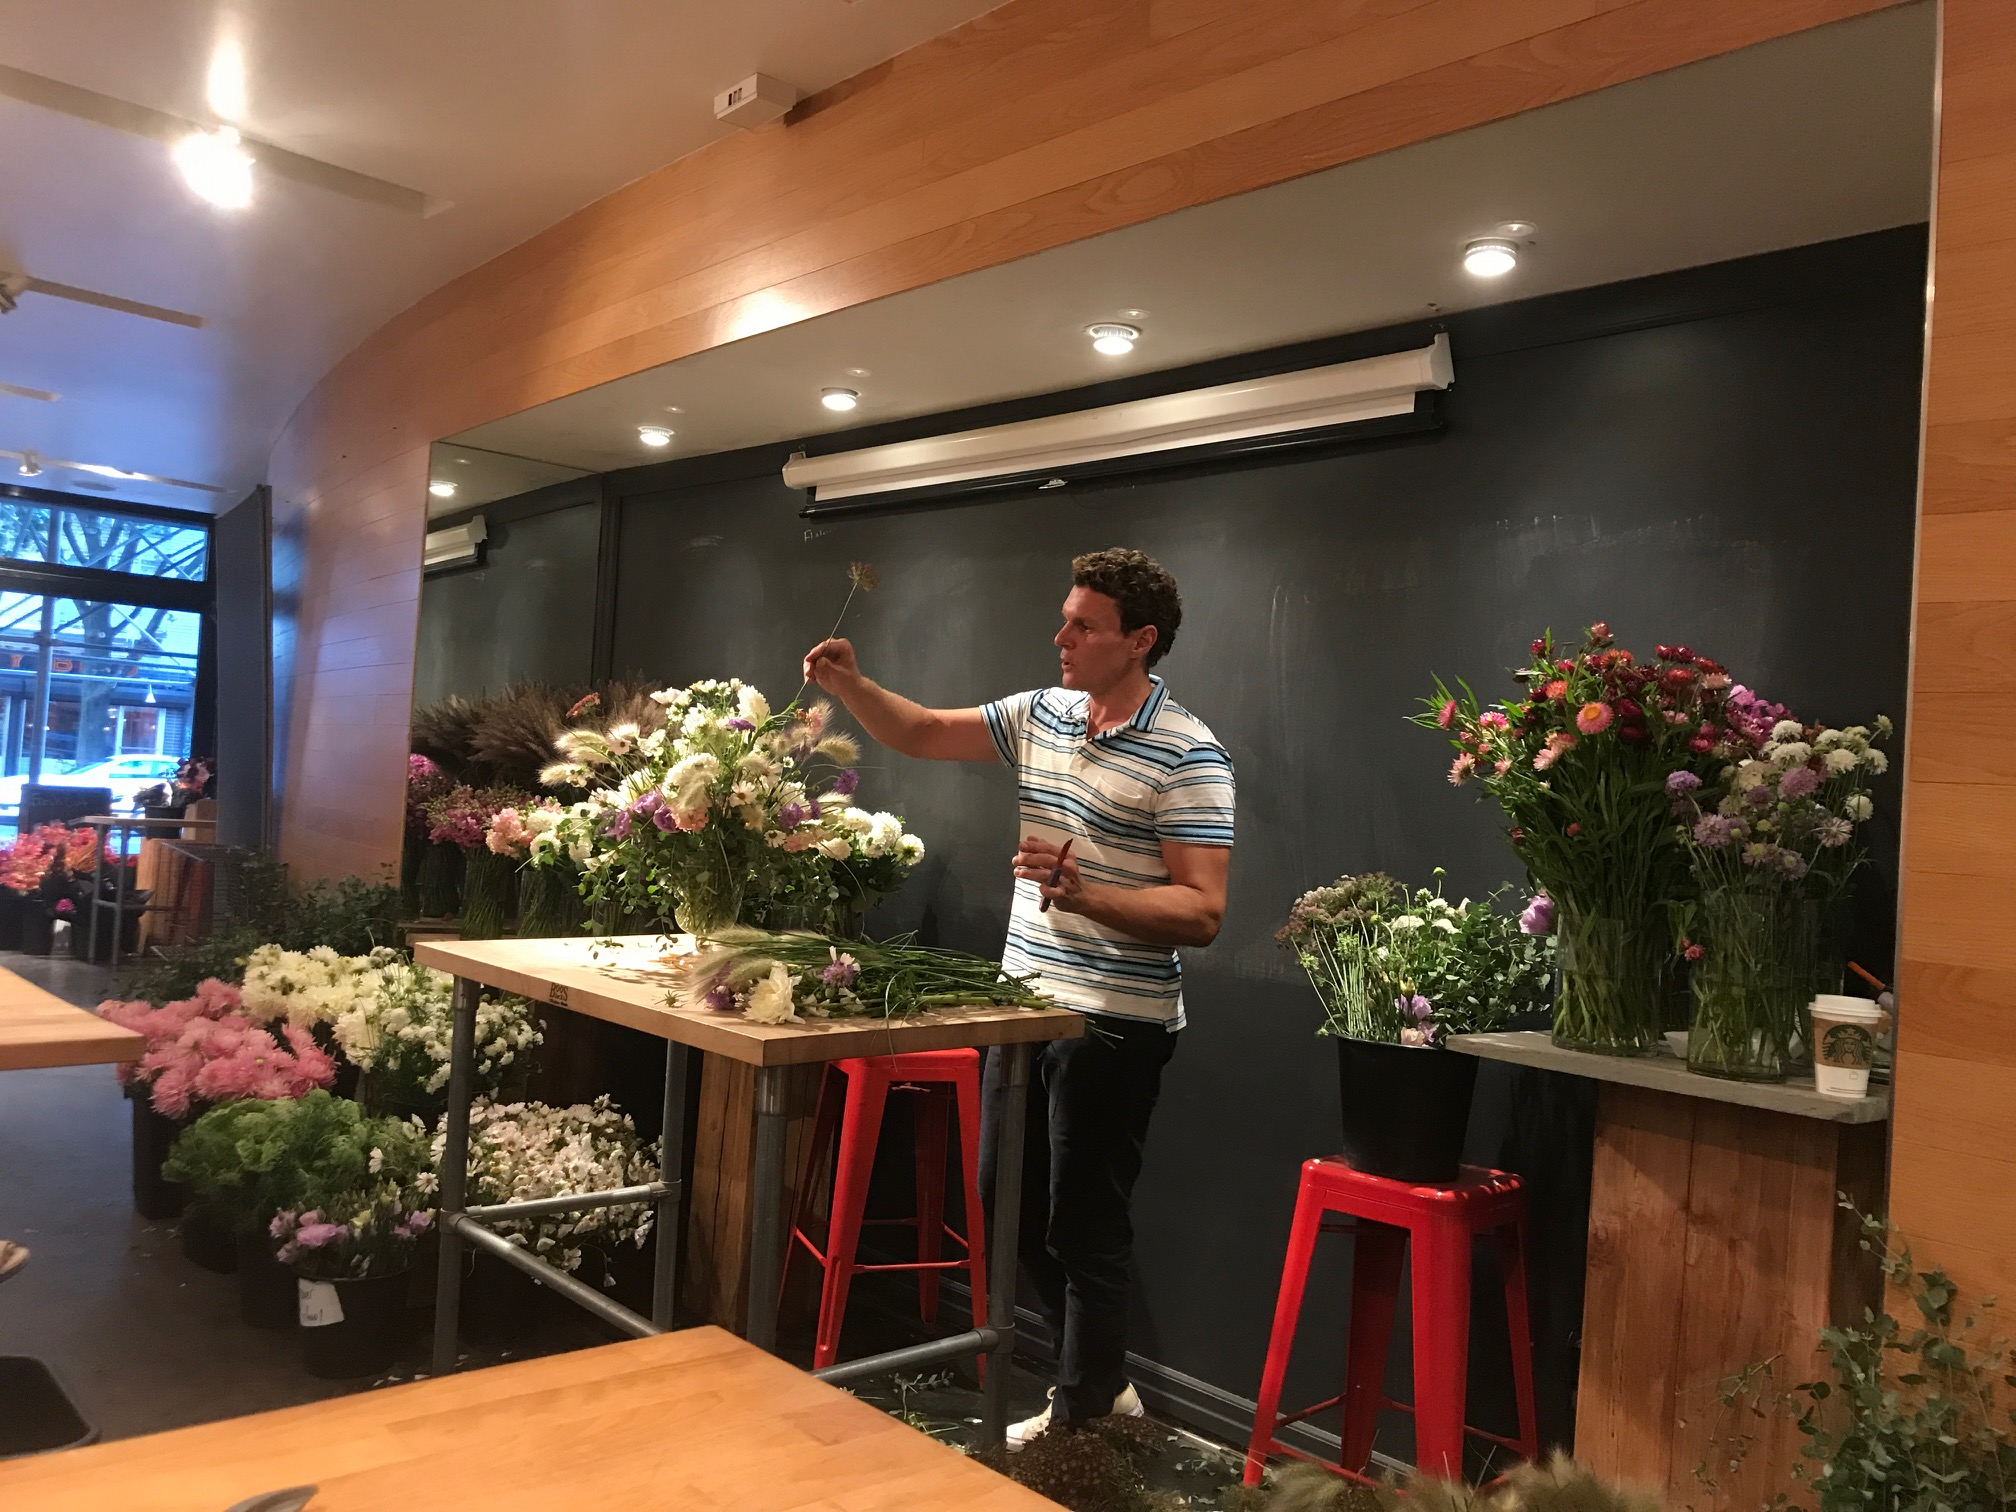 Lewis Miller working on his demonstration arrangement. The strawflowers at right are from our farm.